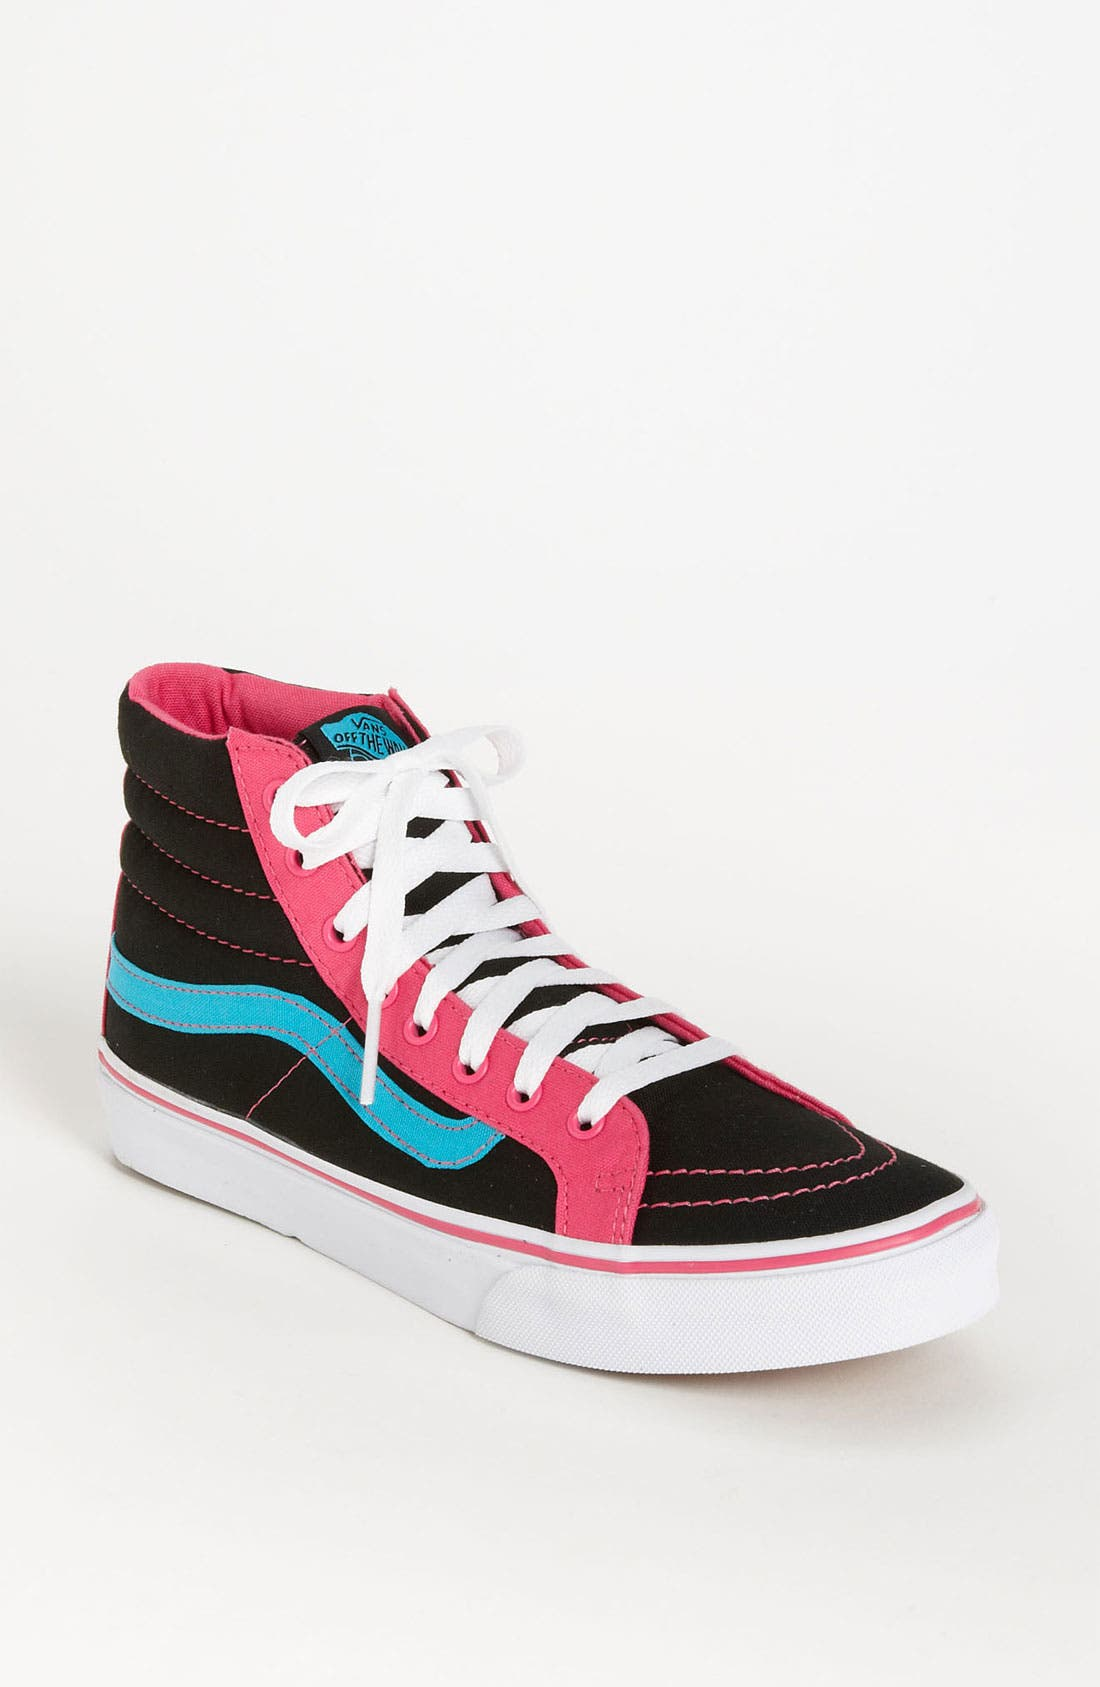 Alternate Image 1 Selected - Vans 'Sk8-Hi - Slim Pop' Sneaker (Women)